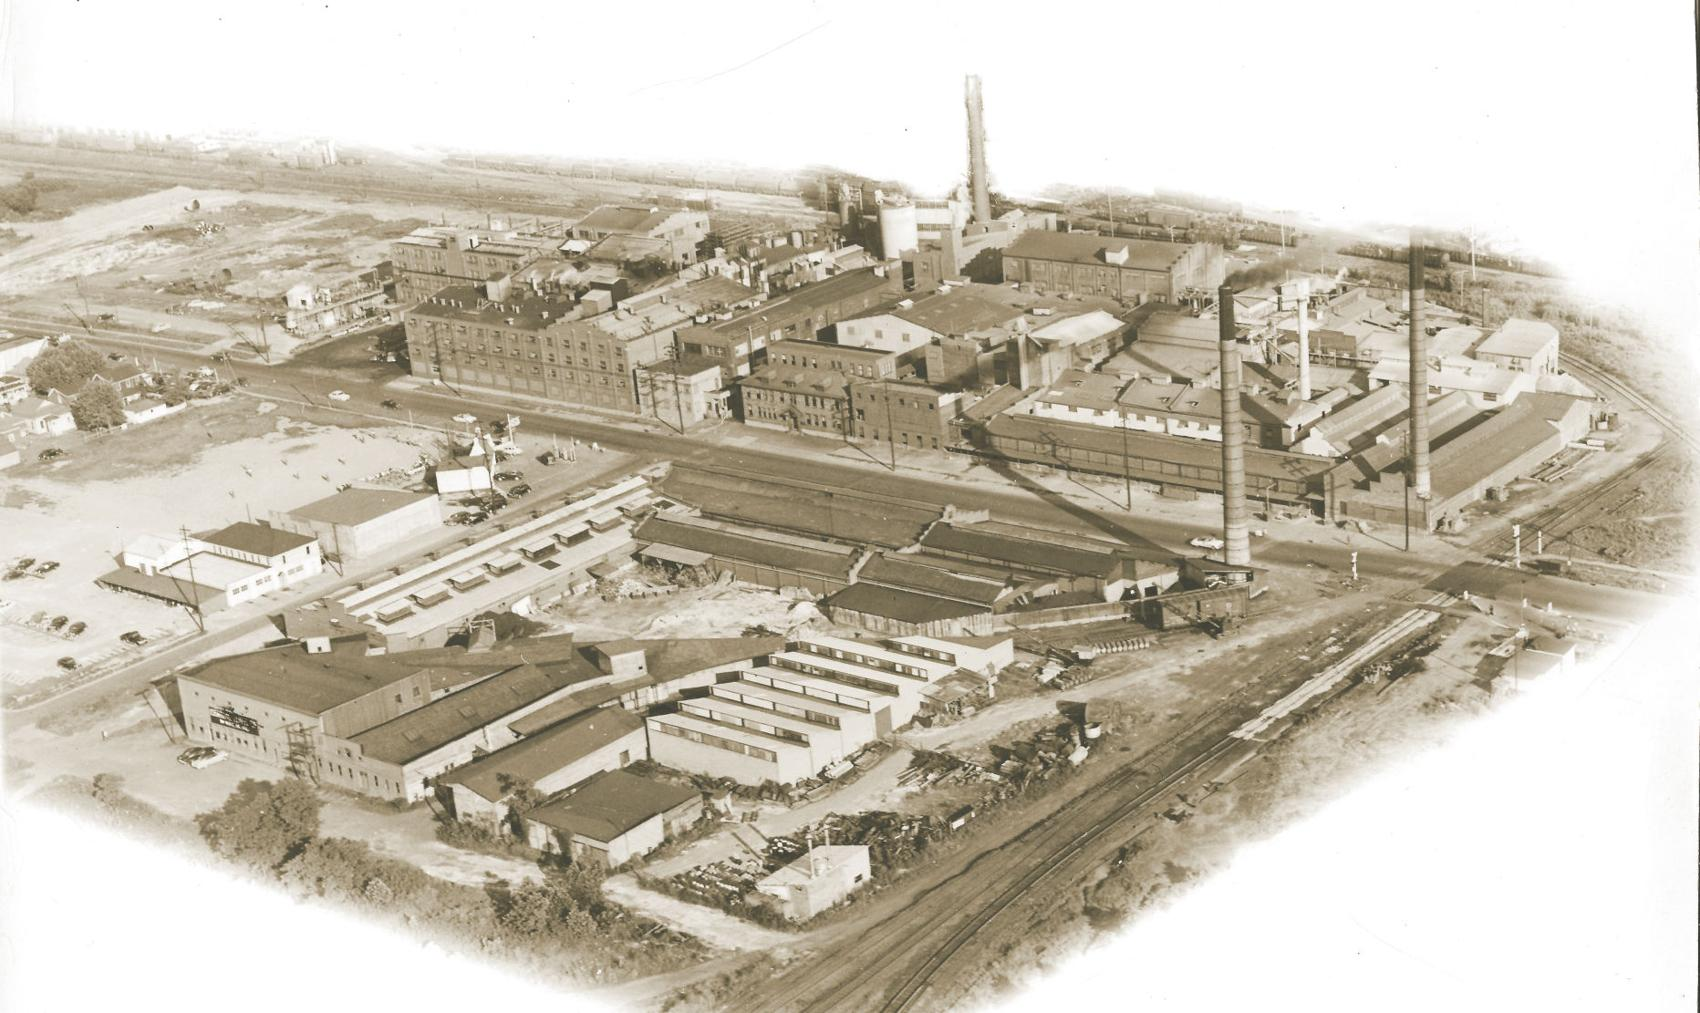 The sprawling Standard Ultramarine & Color Co. plant in Huntington